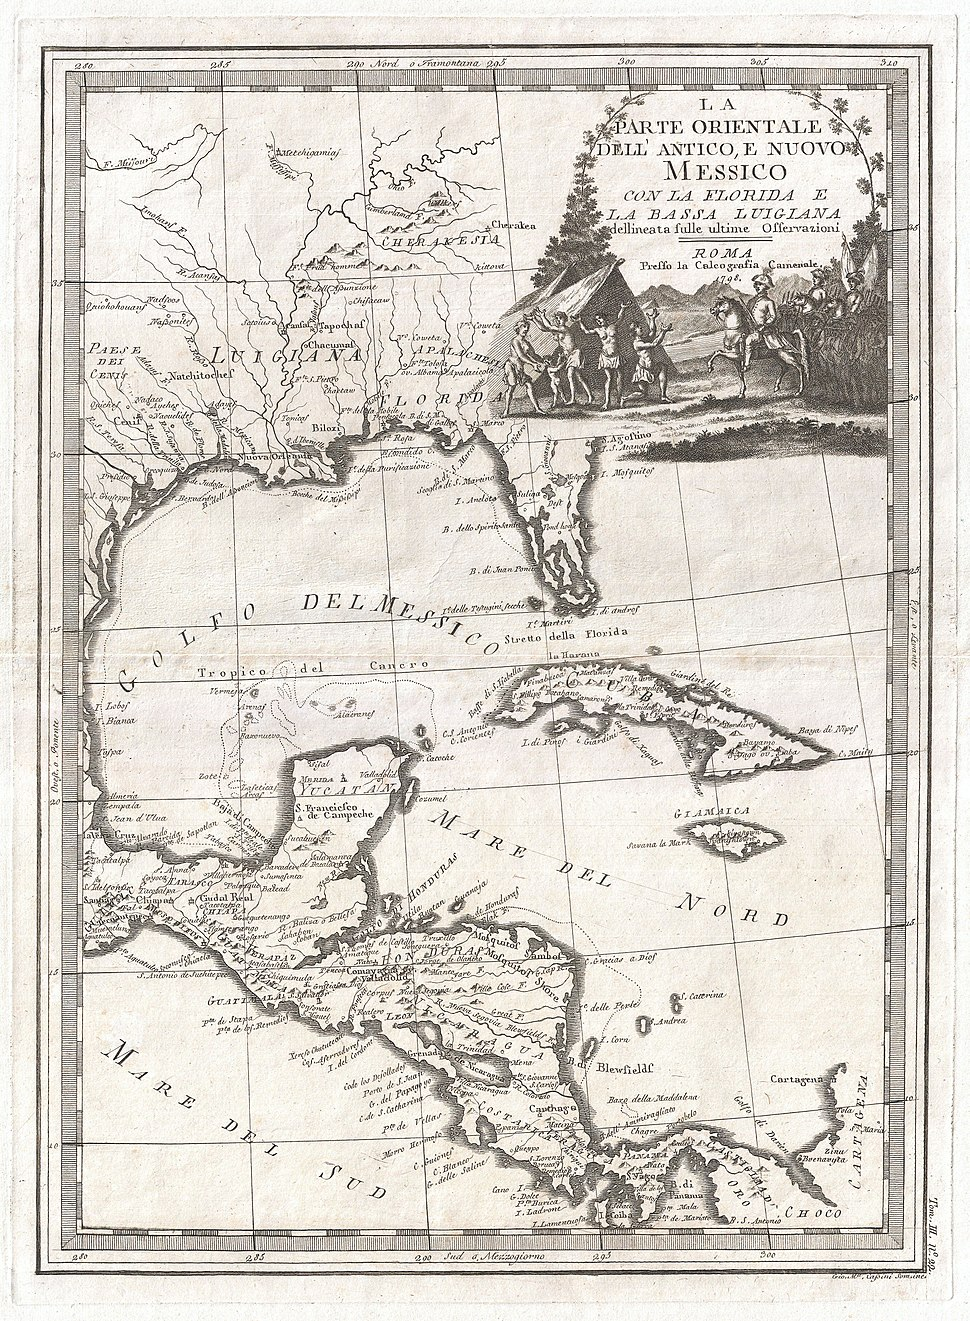 1798 Cassini Map of Florida, Louisiana, Cuba, and Central America - Geographicus - MessicoFlorida-cassini-1798